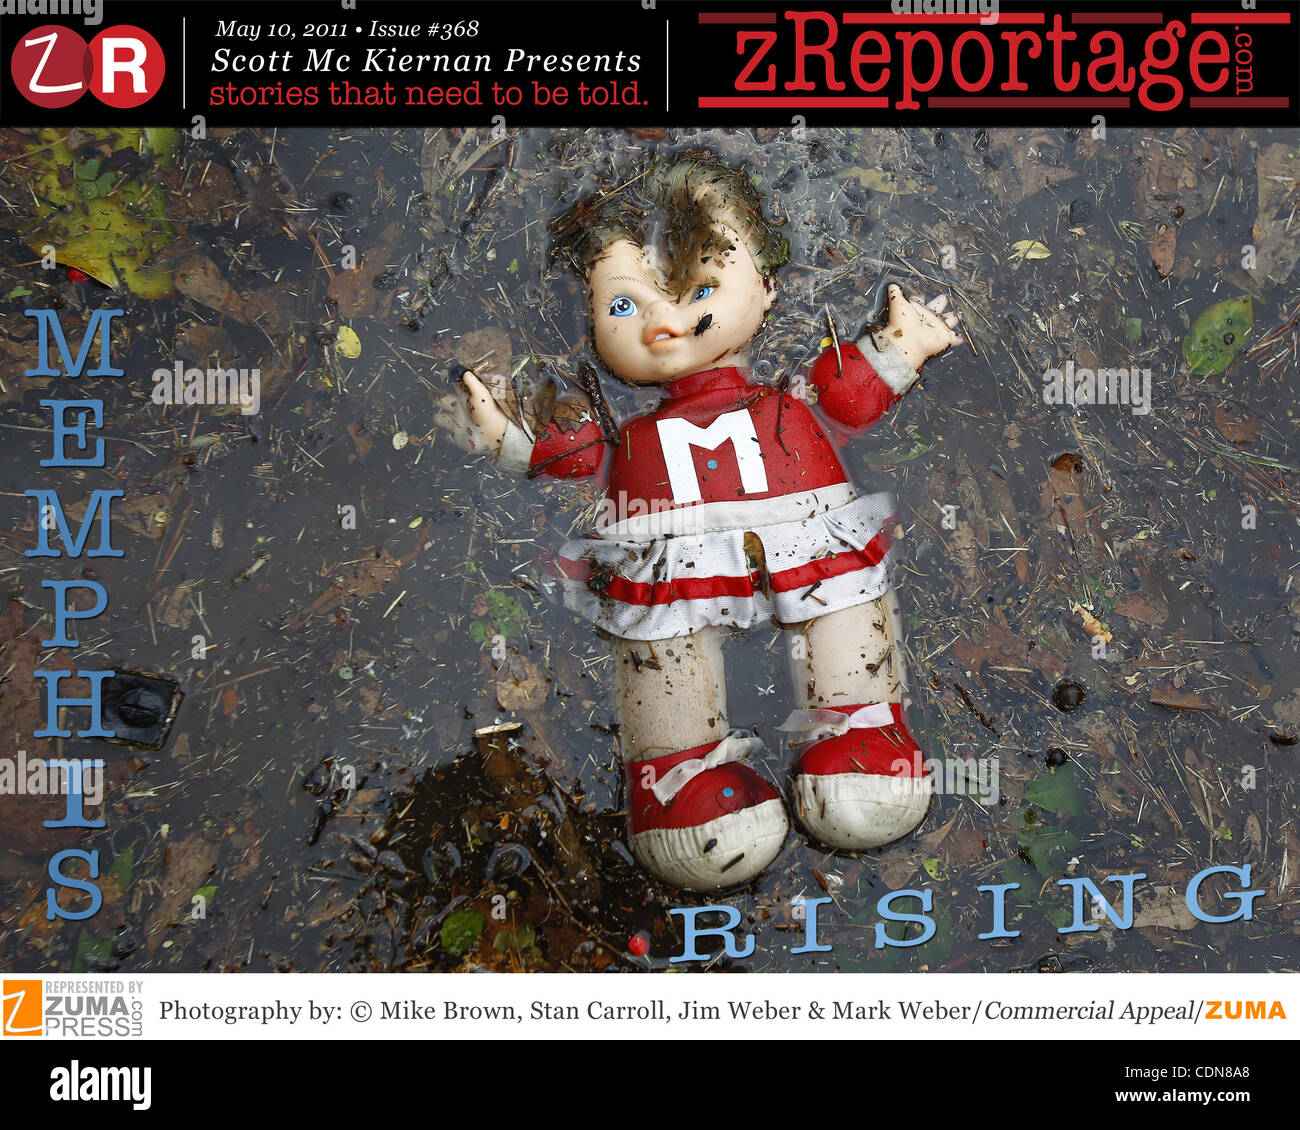 zReportage.com Story of the Week #368: Memphis River- Flood of the Century - Launched May 11, 2011. Full multimedia - Stock Image